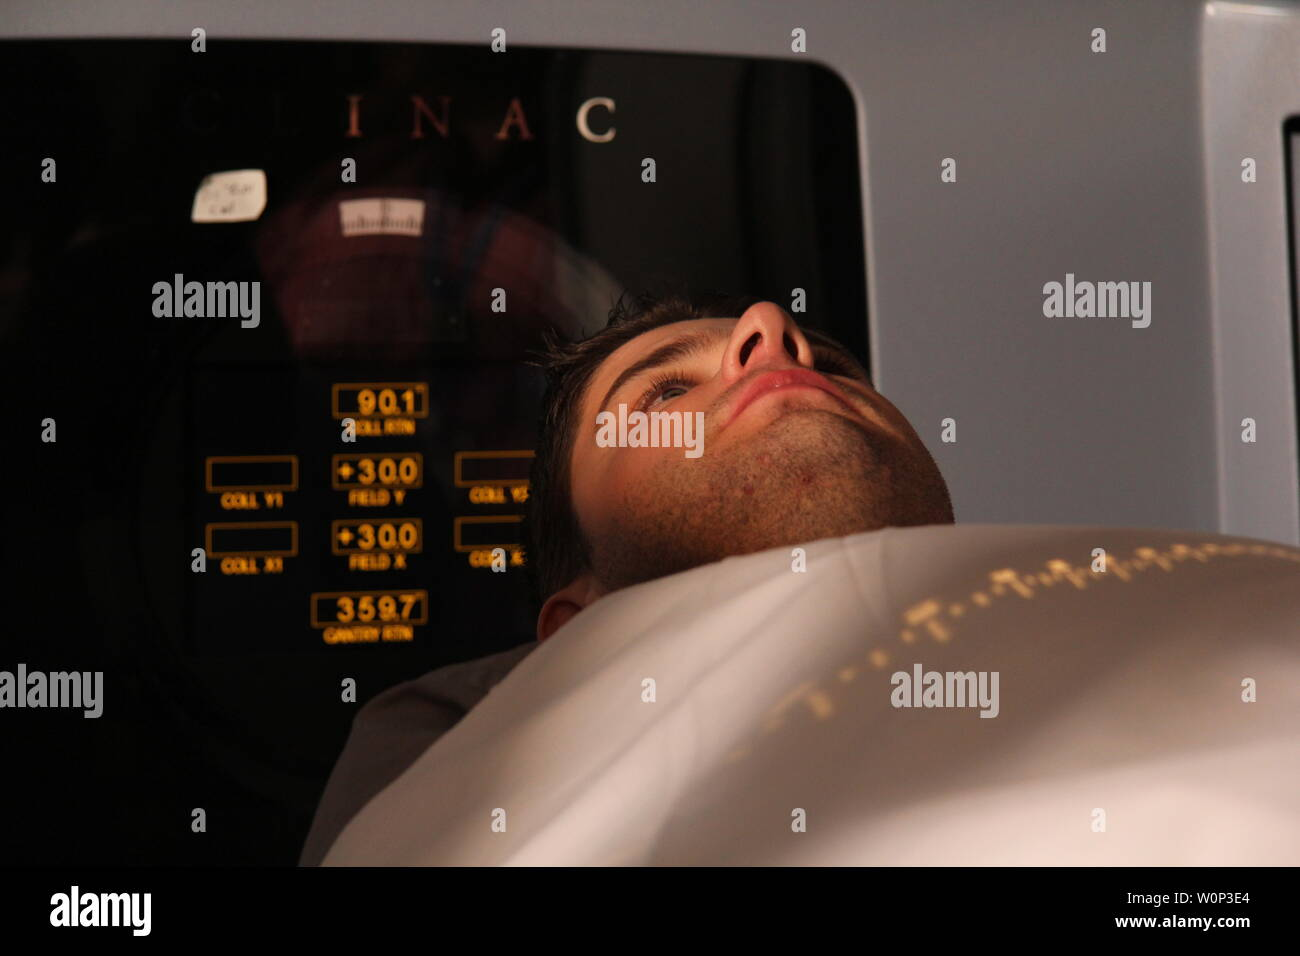 Radiation Treatment Stock Photos & Radiation Treatment Stock